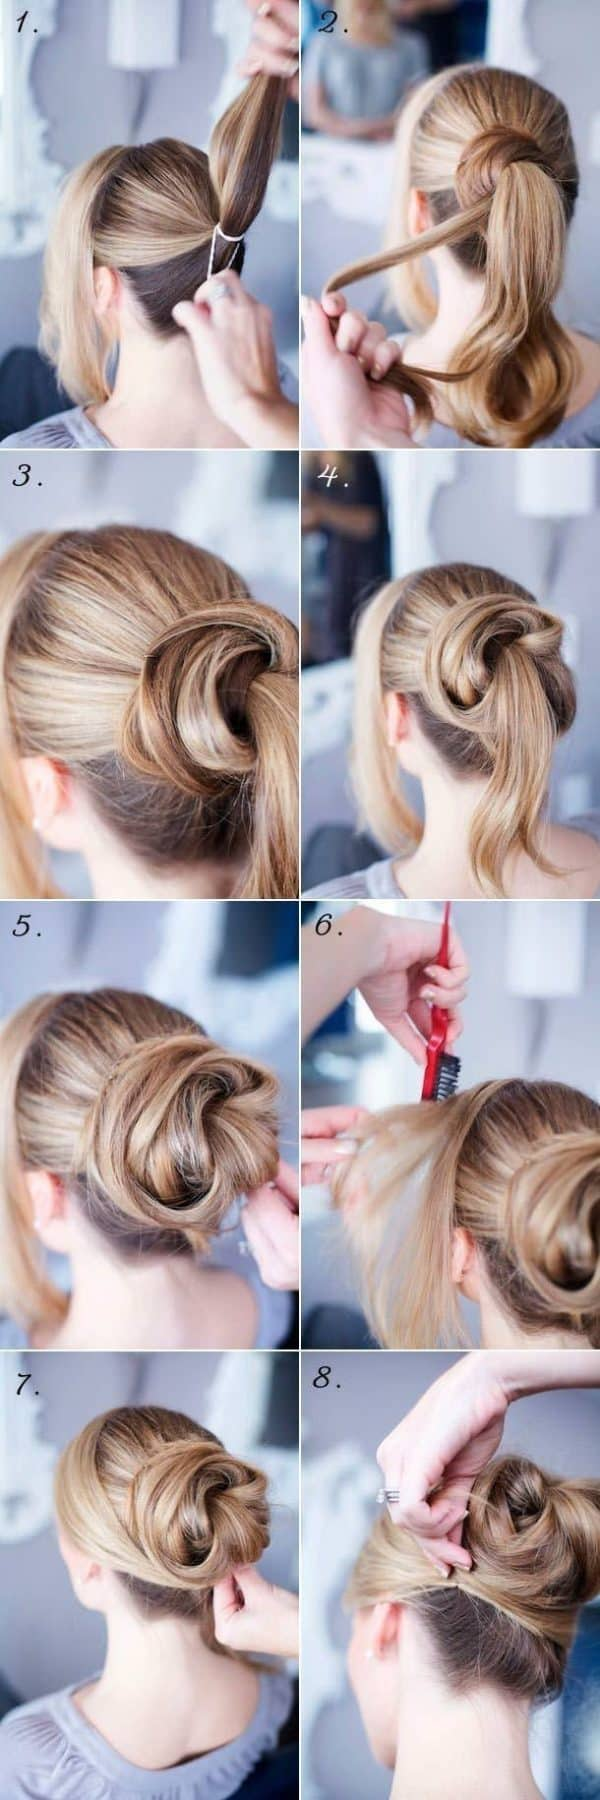 Step By Step Up Do Tutorials That Are Just Perfect For Wedding Guests